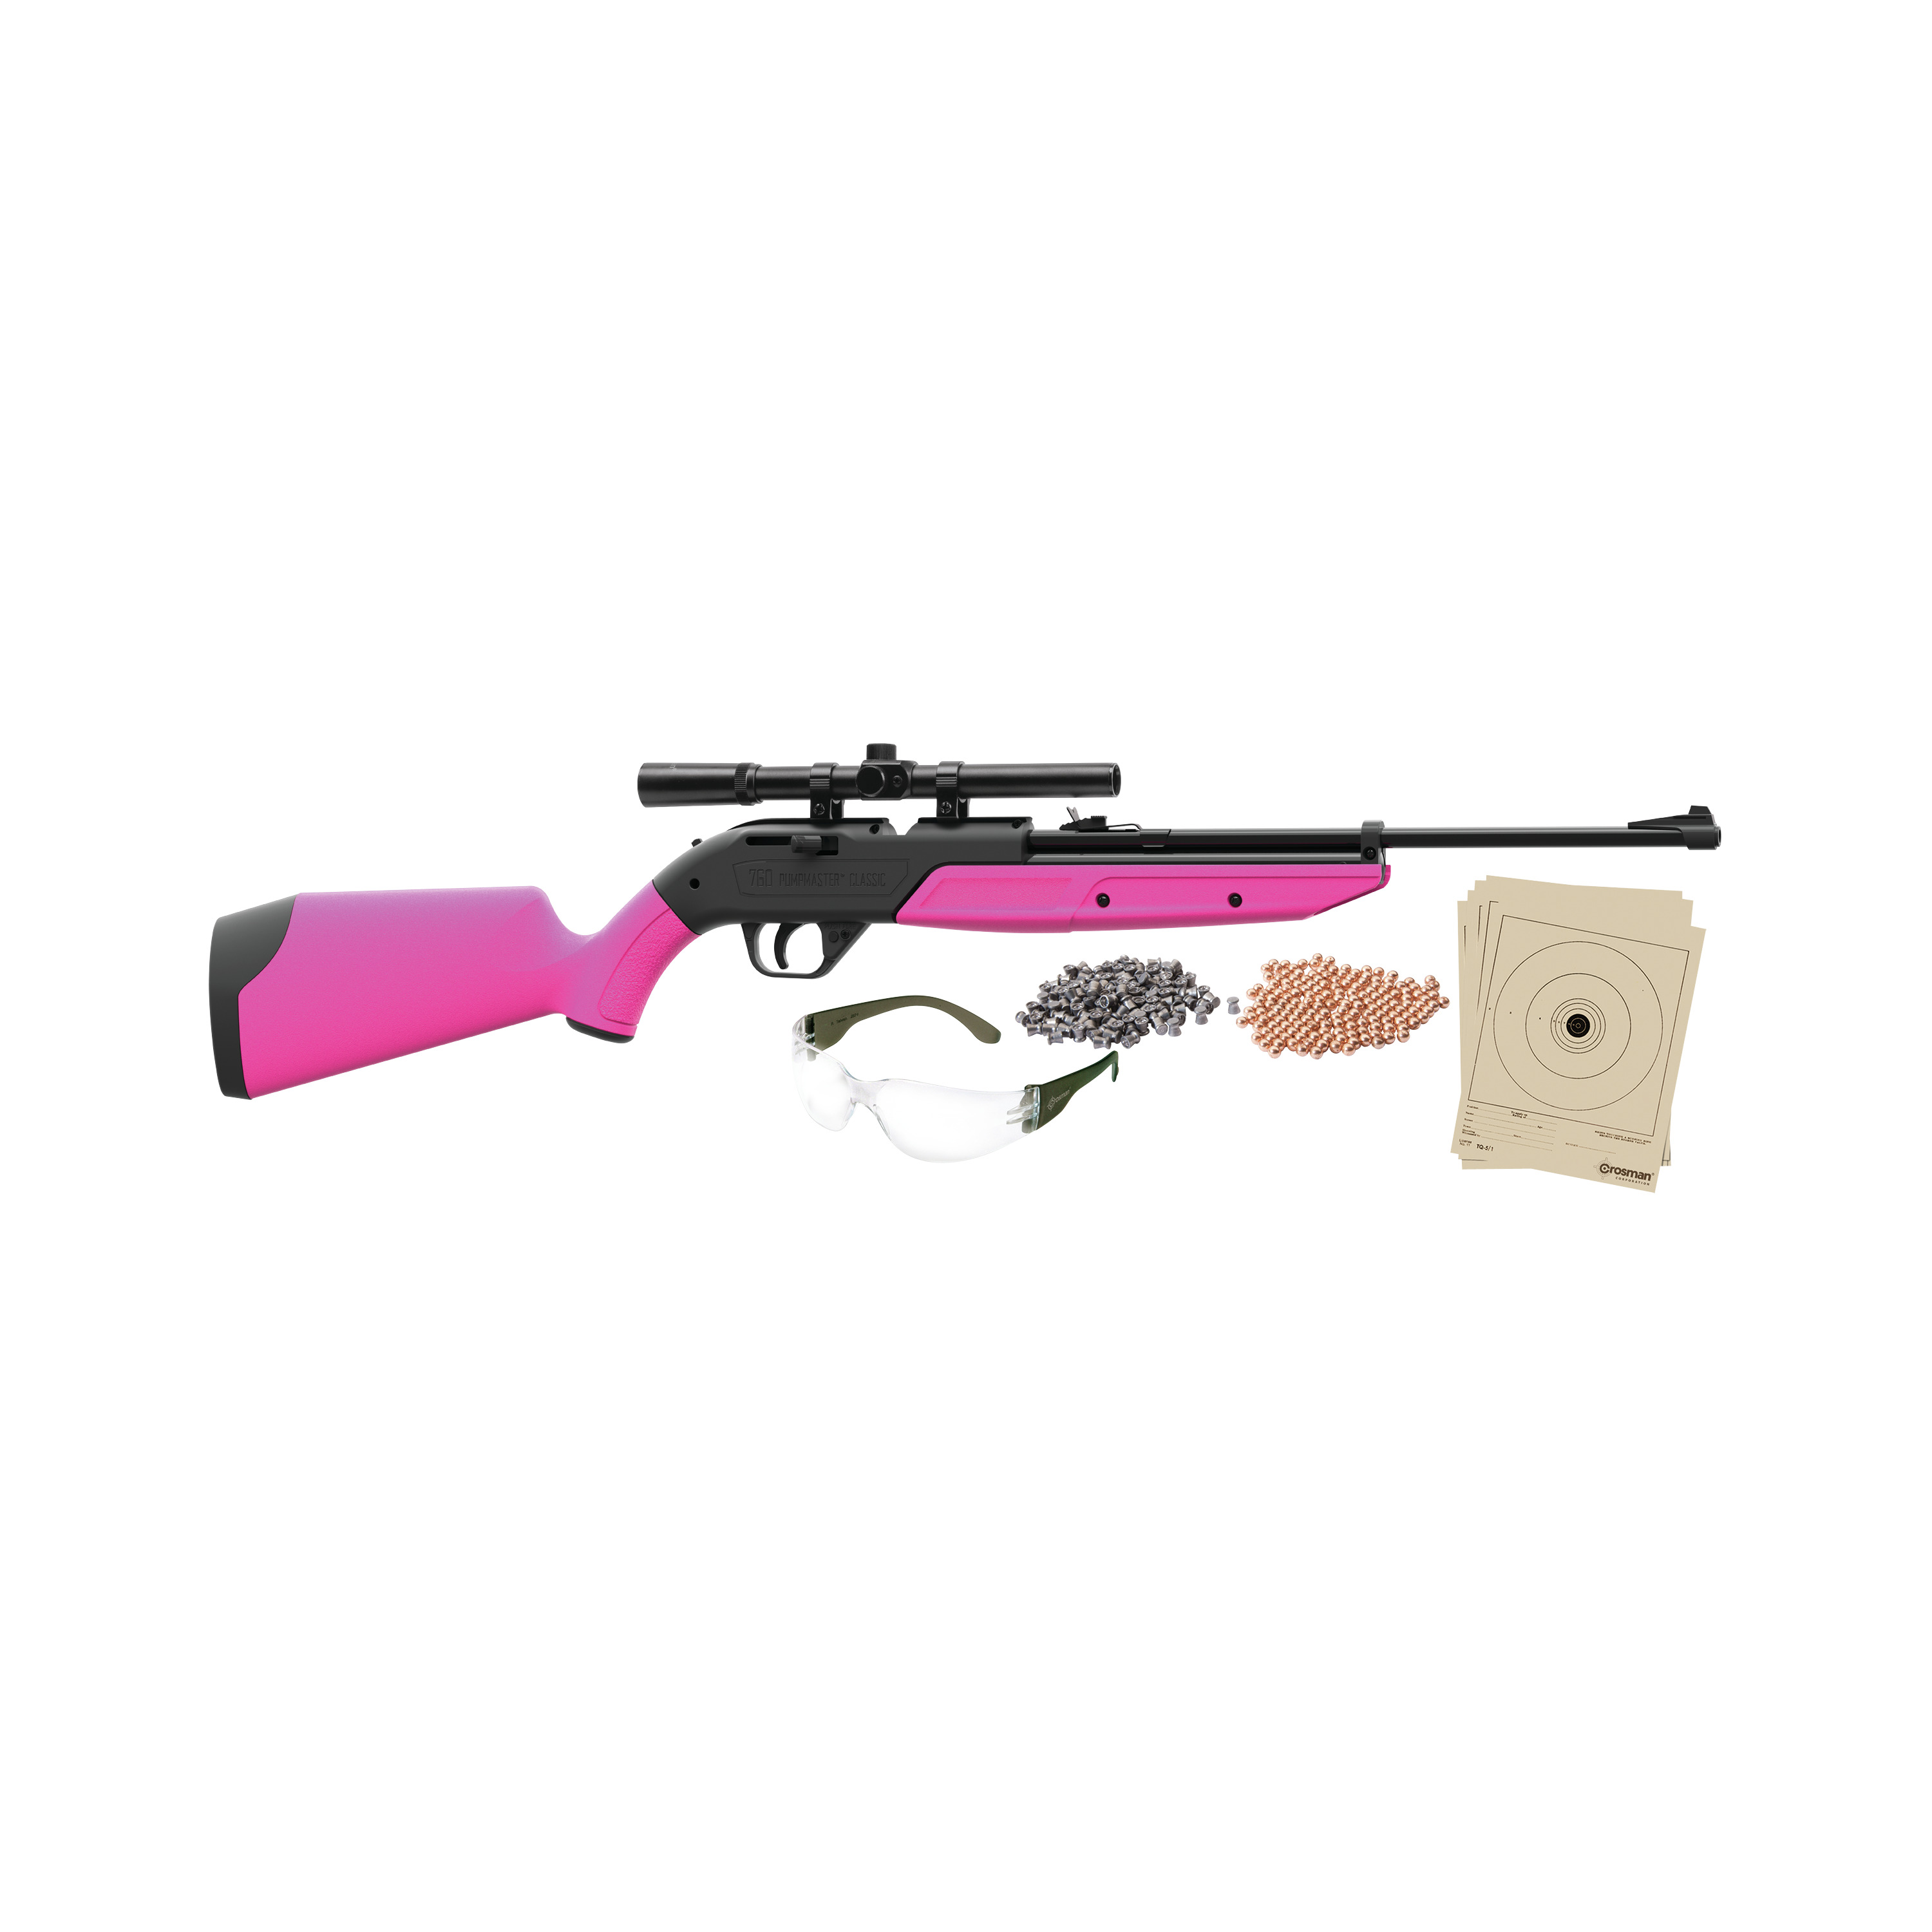 Crosman 760 Pink Pumpmaster 177 Caliber Air Rifle with Scope, Ammo, glasses and targets, 760PKT